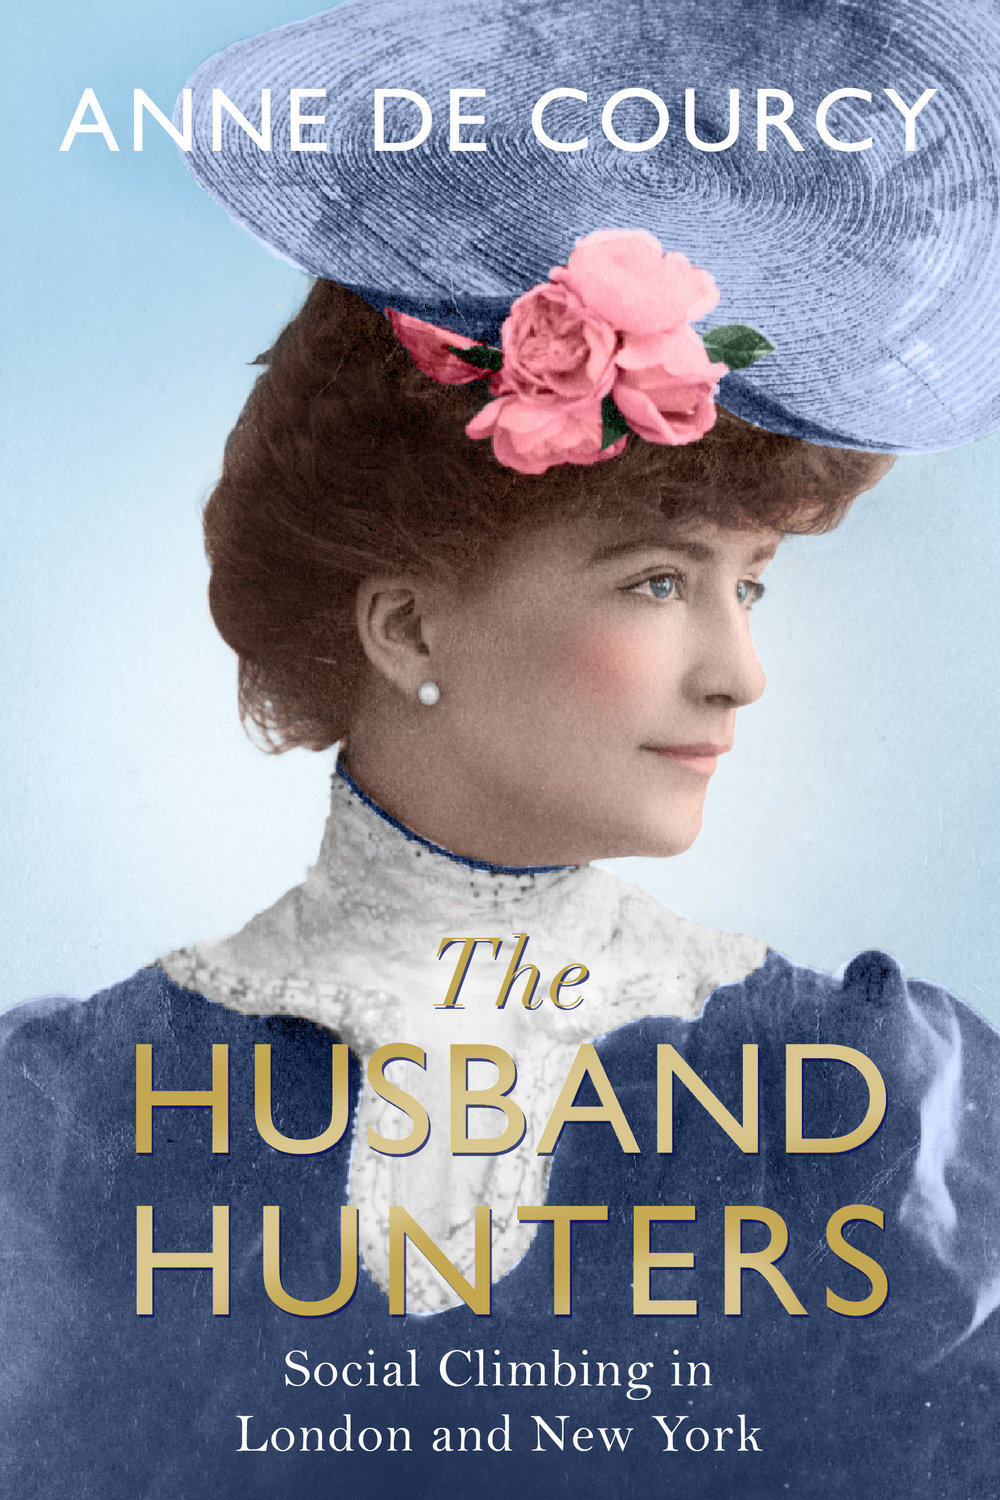 THE HUSBAND HUNTERS  Biography, 320 pages Weidenfeld & Nicholson, June 2017  Towards the end of the nineteenth century and for the first few years of the twentieth, a strange invasion took place in Britain. From 1874 - the year that Jennie Jerome, the first known 'Dollar Princess', married Randolph Churchill - to 1905, dozens of young American heiresses married into the British peerage, bringing with them all the fabulous wealth, glamour and sophistication of the Gilded Age. Anne de Courcy sets the stories of these young women and their families in the context of their times. Based on extensive first-hand research, drawing on diaries, memoirs and letters, this richly entertaining group biography reveals what they thought of their new lives in England - and what England thought of them.